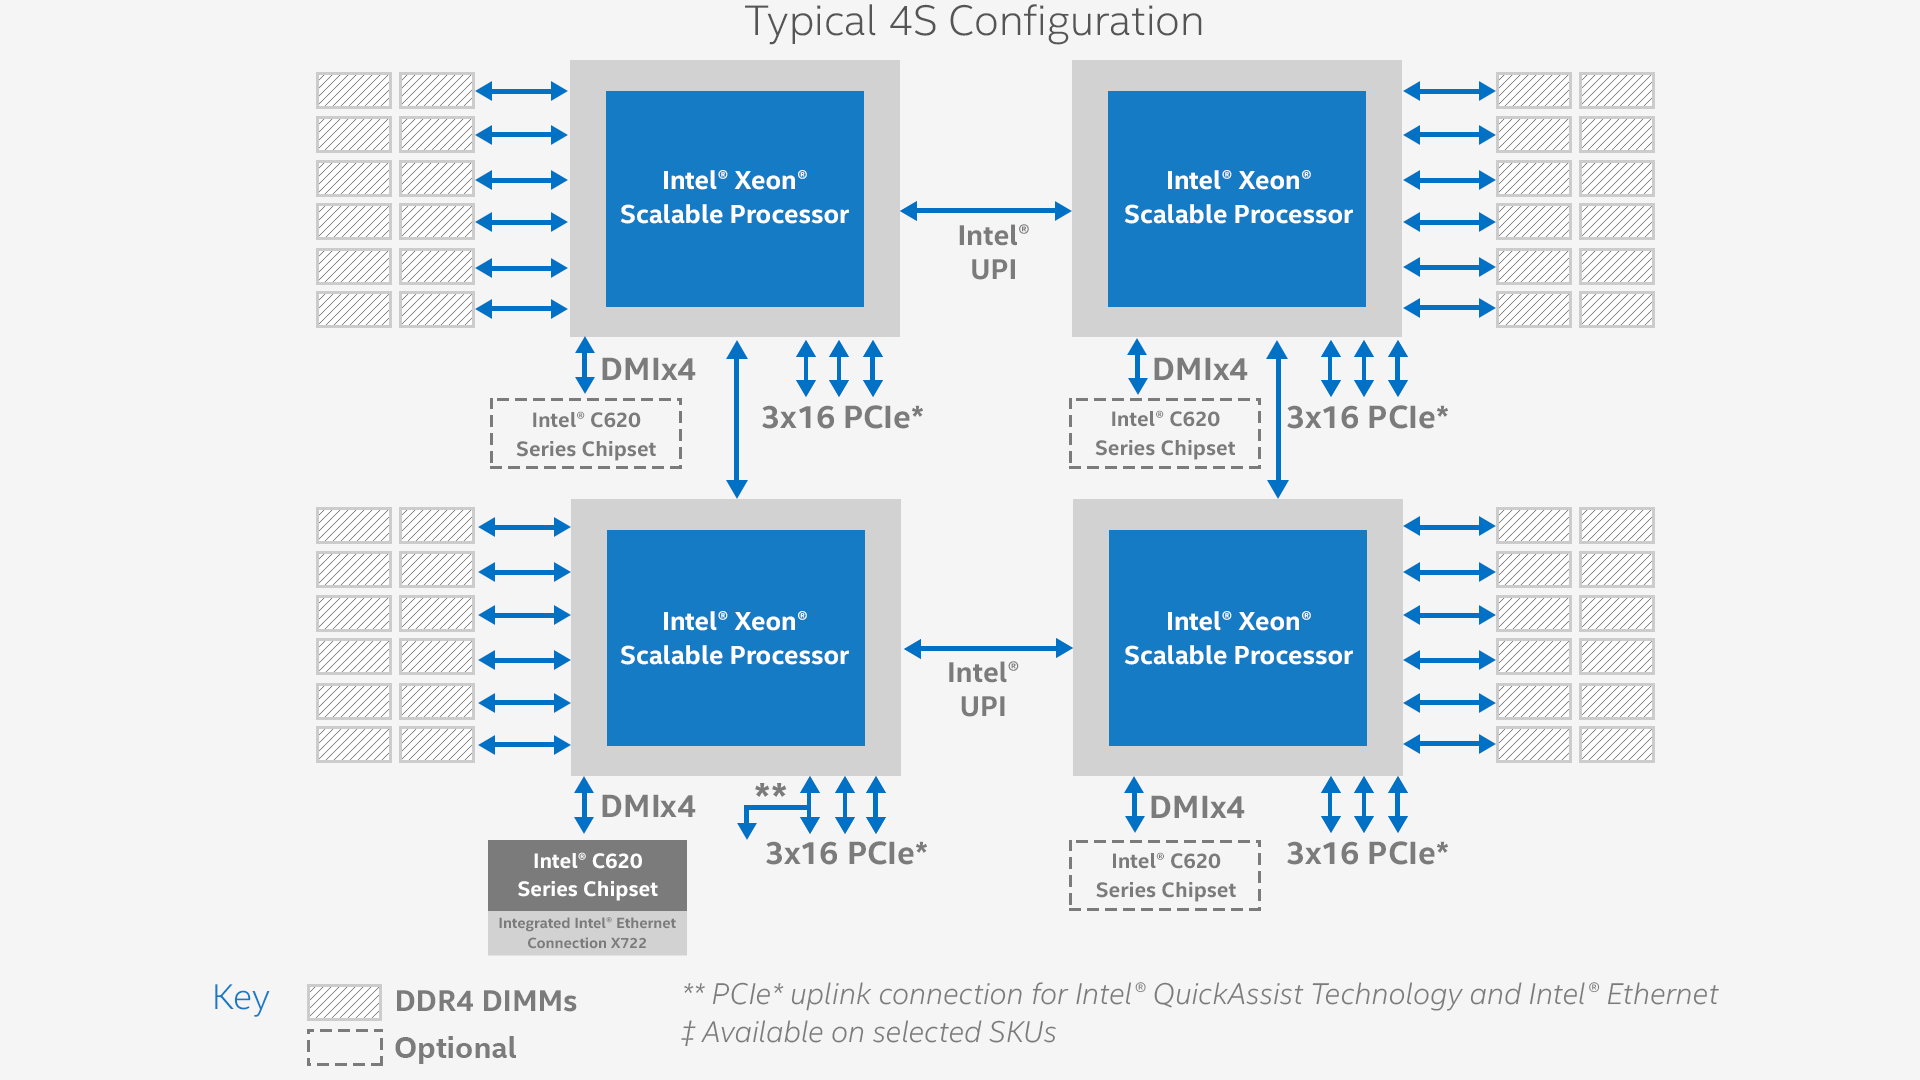 Intel® Xeon® Processor Scalable Family Block Diagram: 4S Ring Configuration